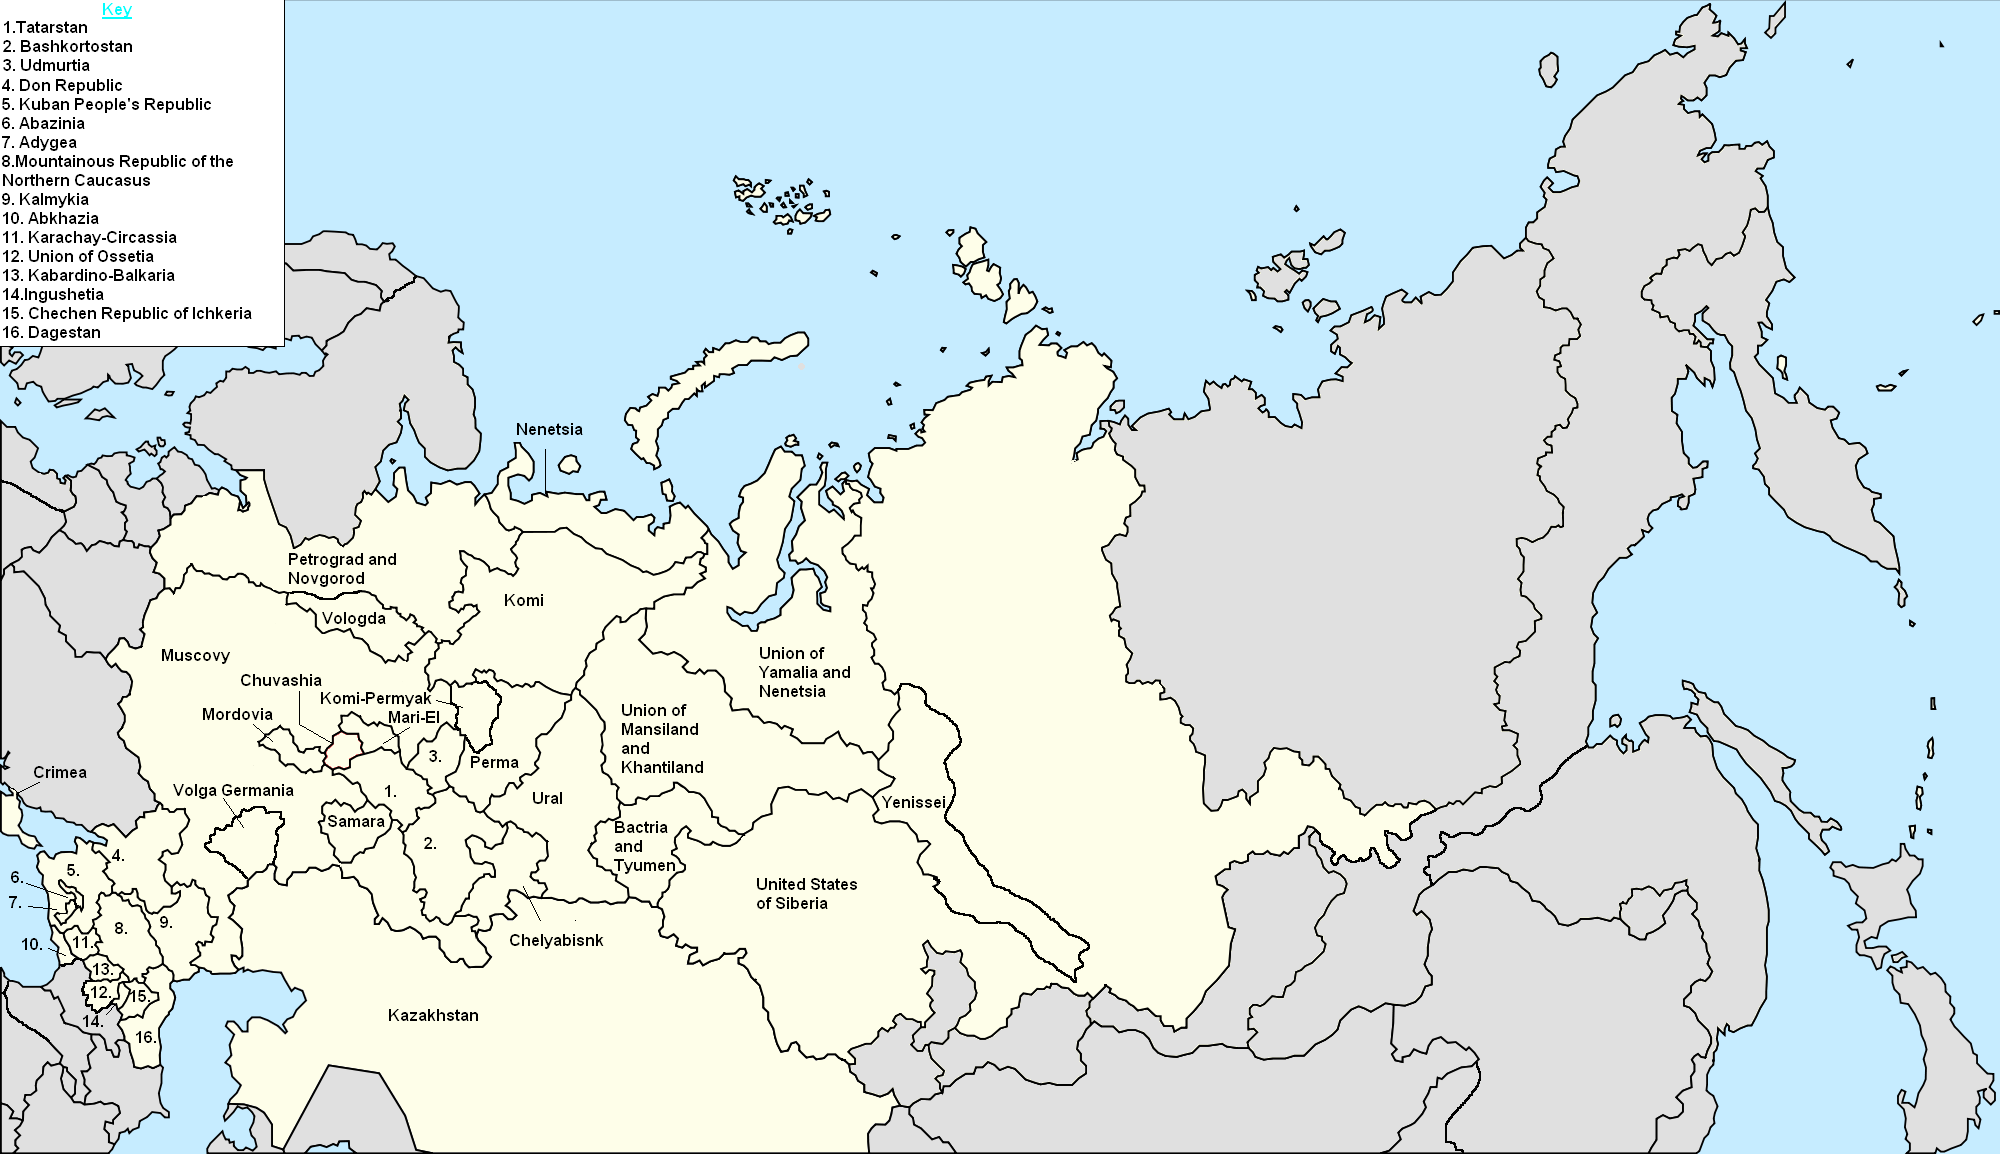 Image Federation Of Russia Central Worldpng Alternative - Lena river on world map